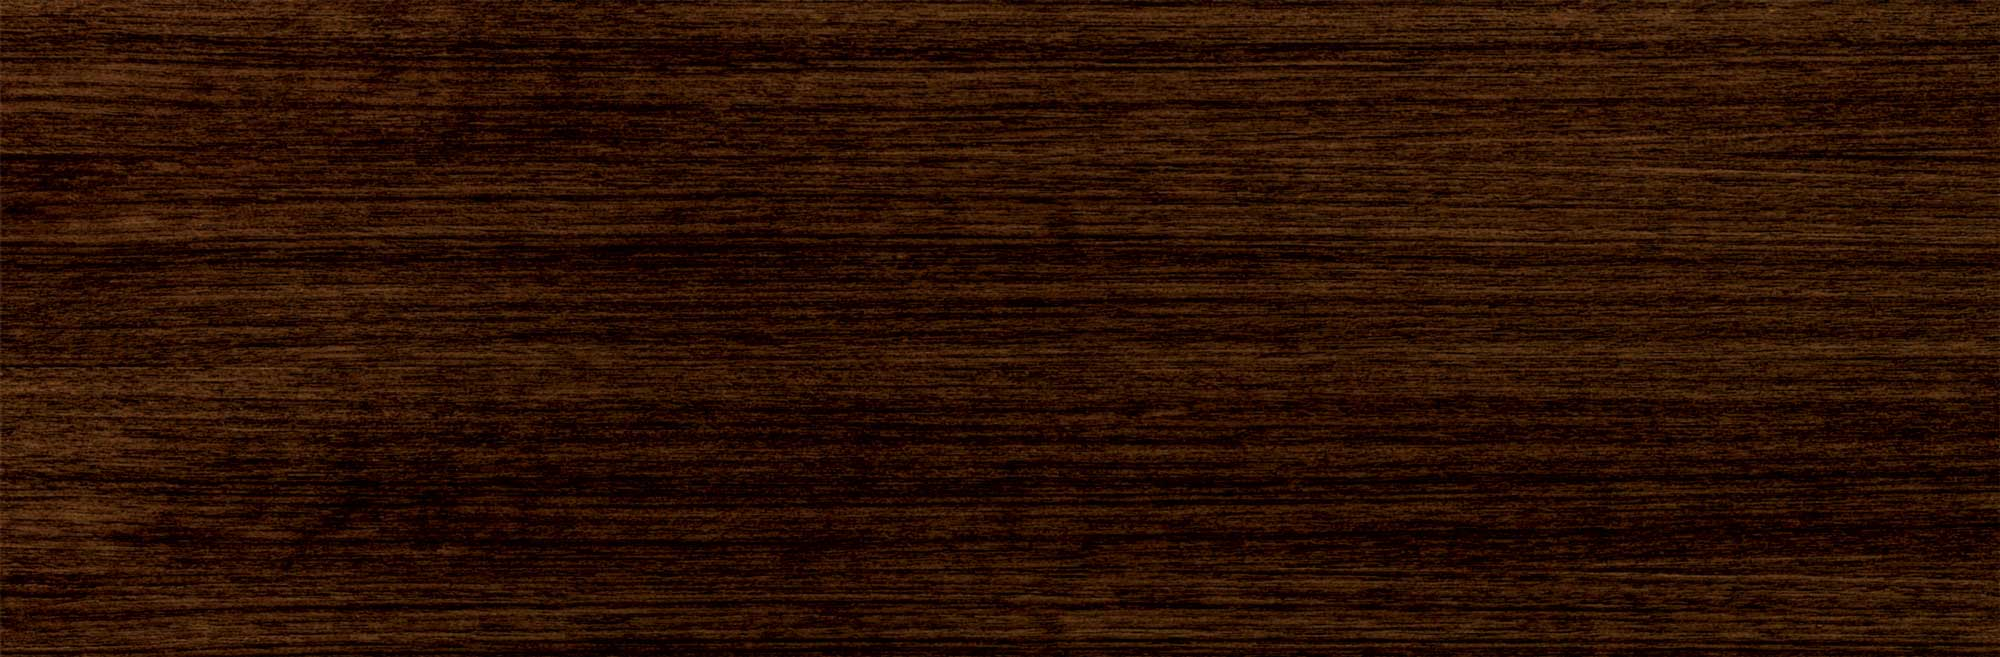 wood-hi-res-dark2000x657